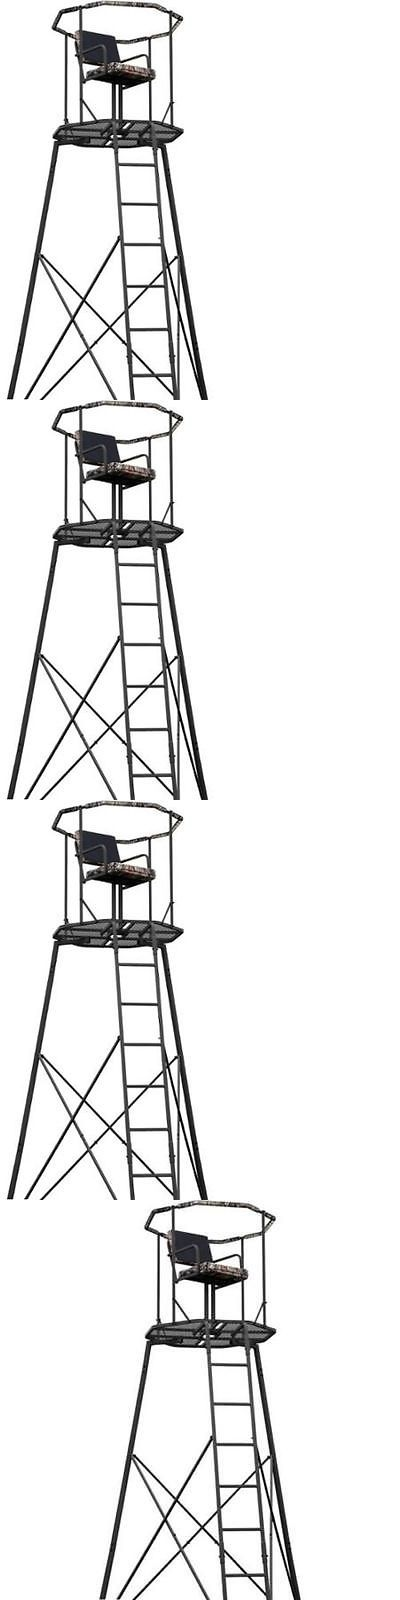 Tree Stands 52508: 15 Tripod Hunting Stand With Seat Tree Deer Ladder Bow Treestand Realtree New BUY IT NOW ONLY: $1224.97